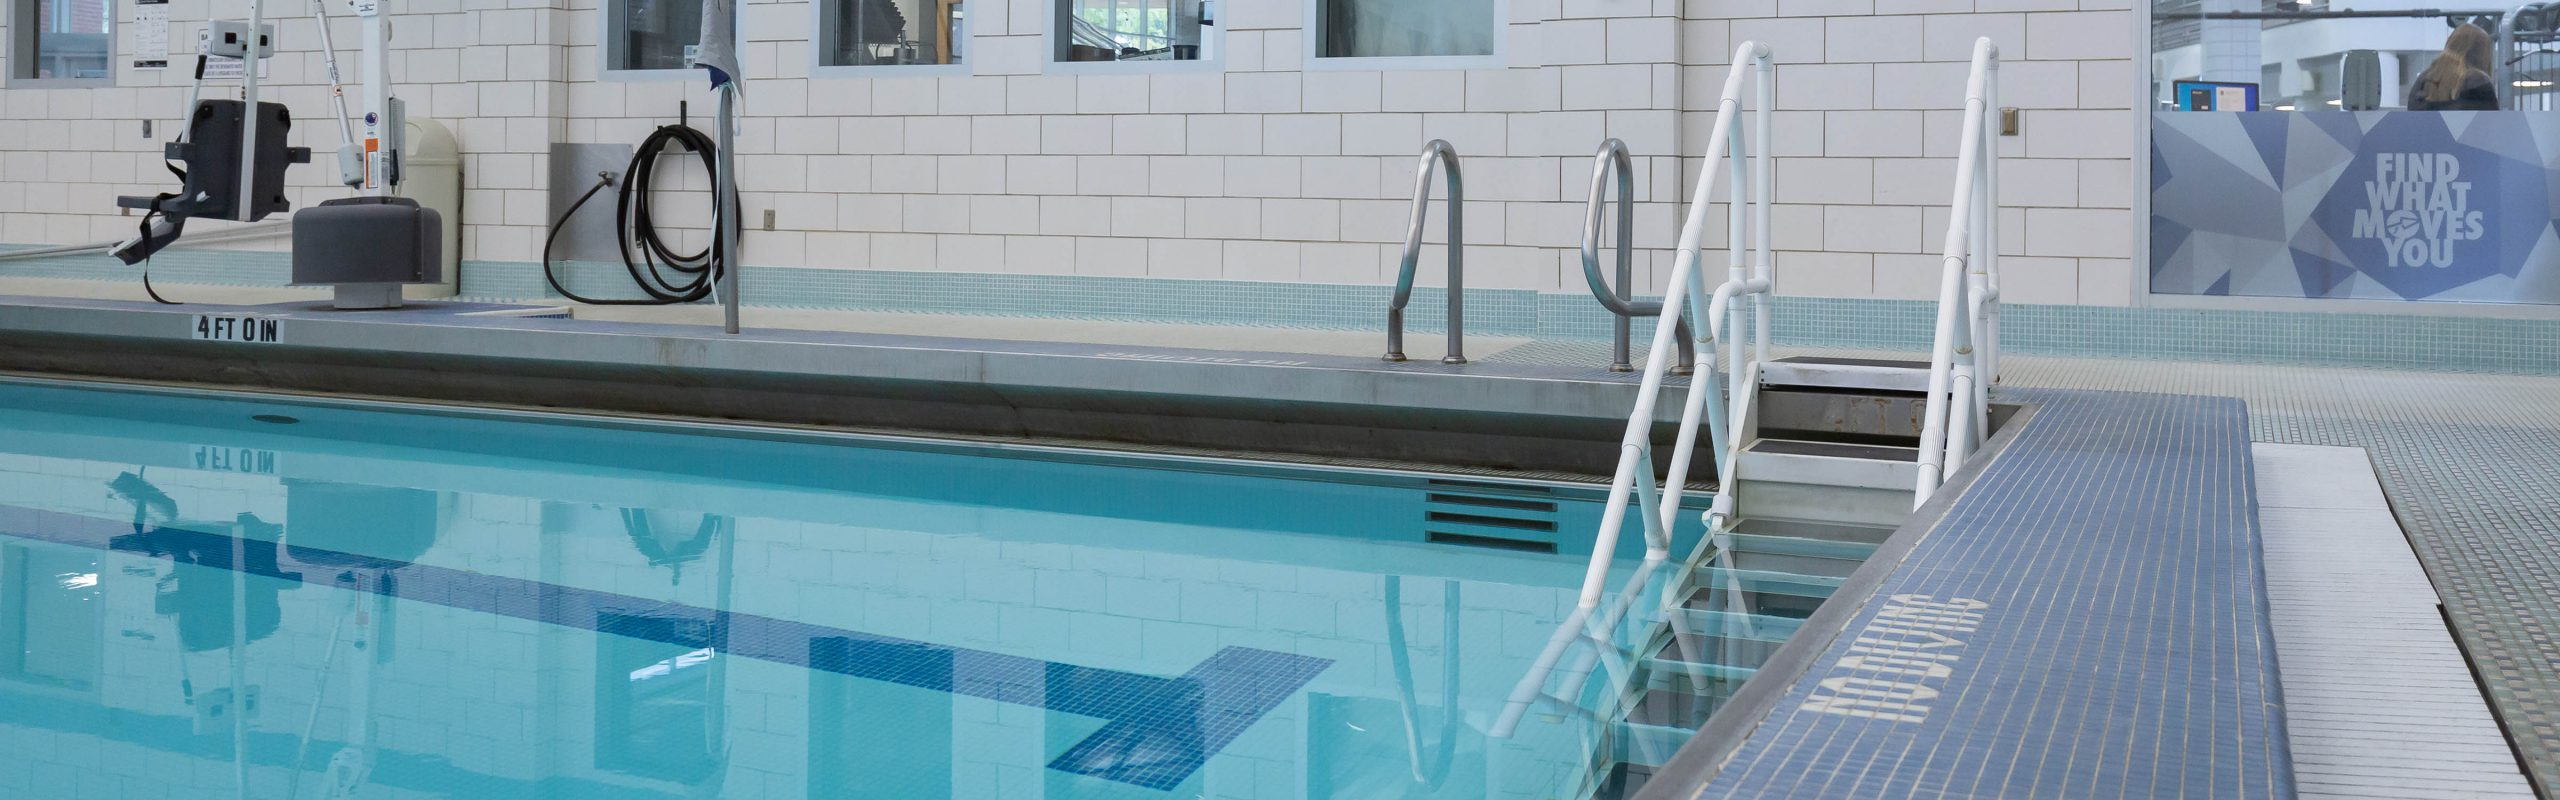 Leach Pool ADA Accessible Stairs